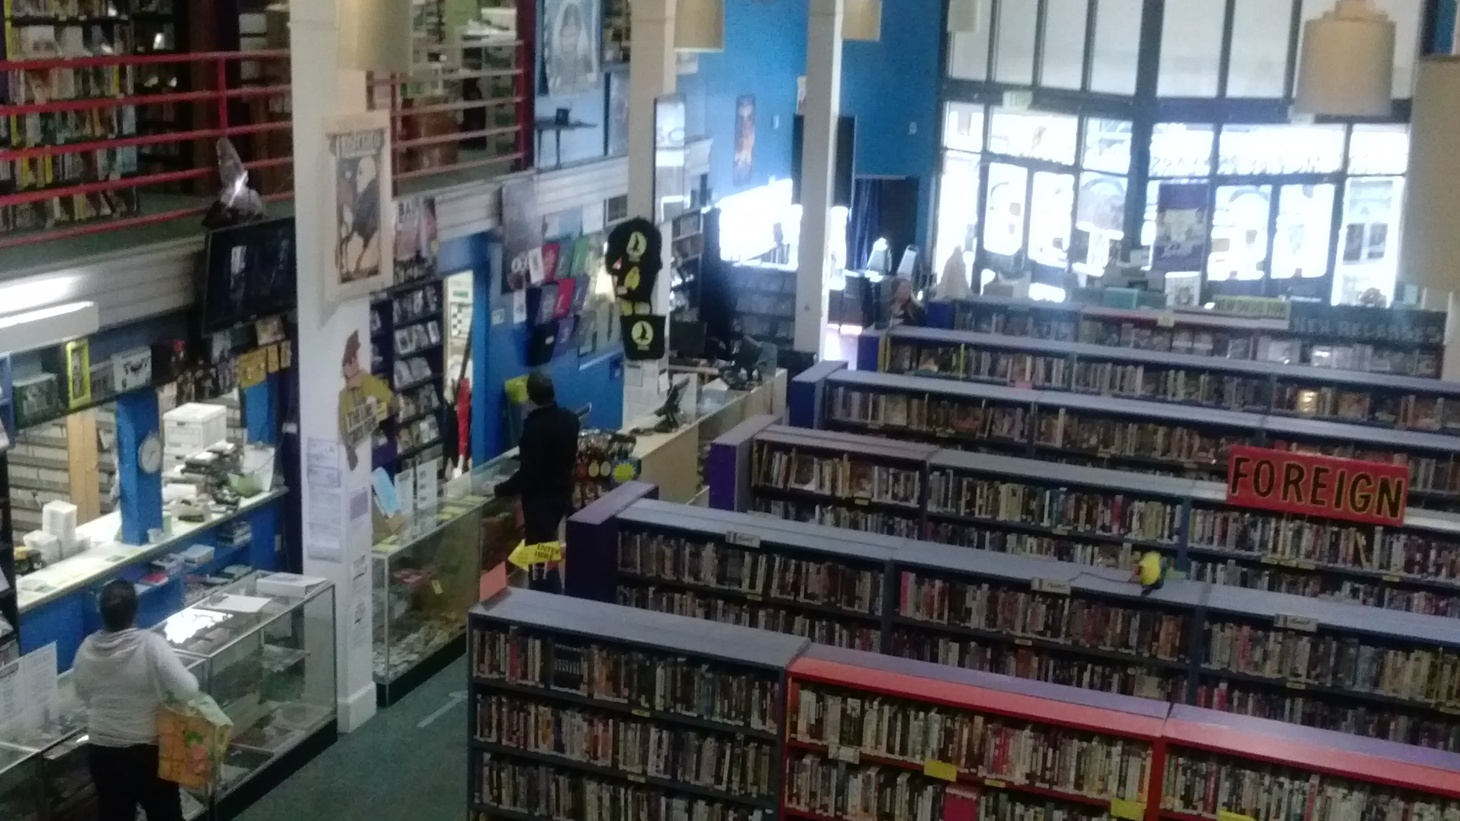 Scarecrow Video  in Seattle is something of an institution. They've got more than 120,000 movies in formats like VHS, laserdisc, DVD, Blue-ray and more. And among those movies are some rare, hard to find titles like Disney's Song of the Southand the Beatles Let It Beon VHS.